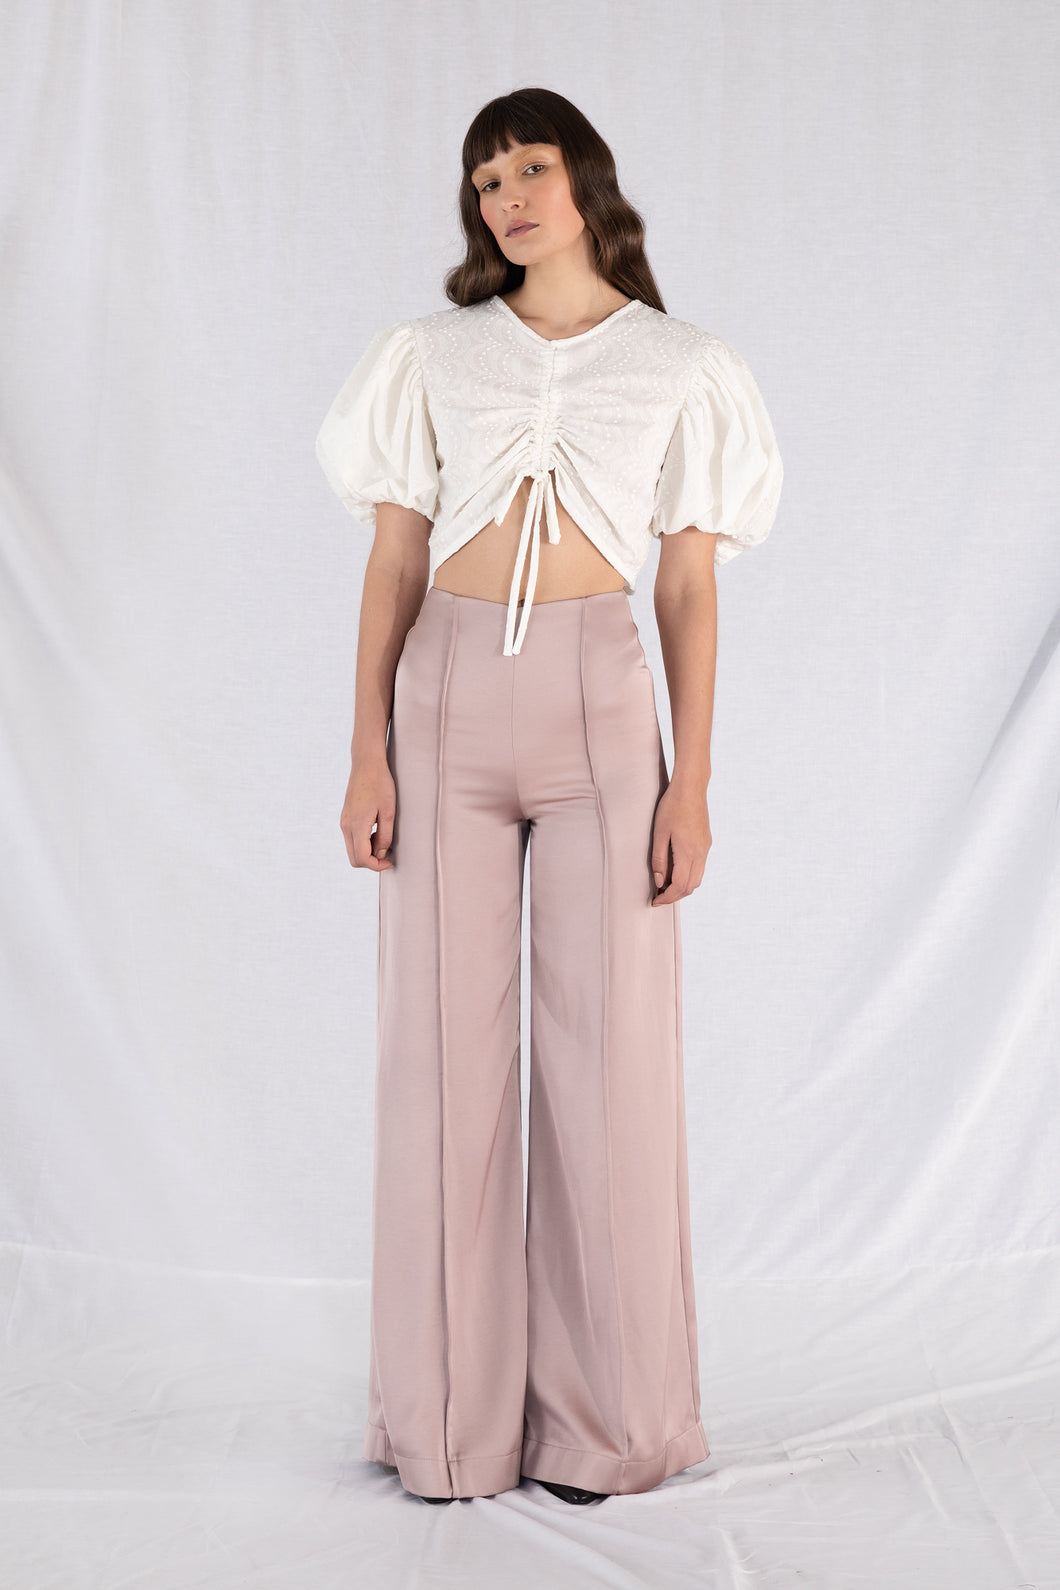 LOVERS TOP - Ivory